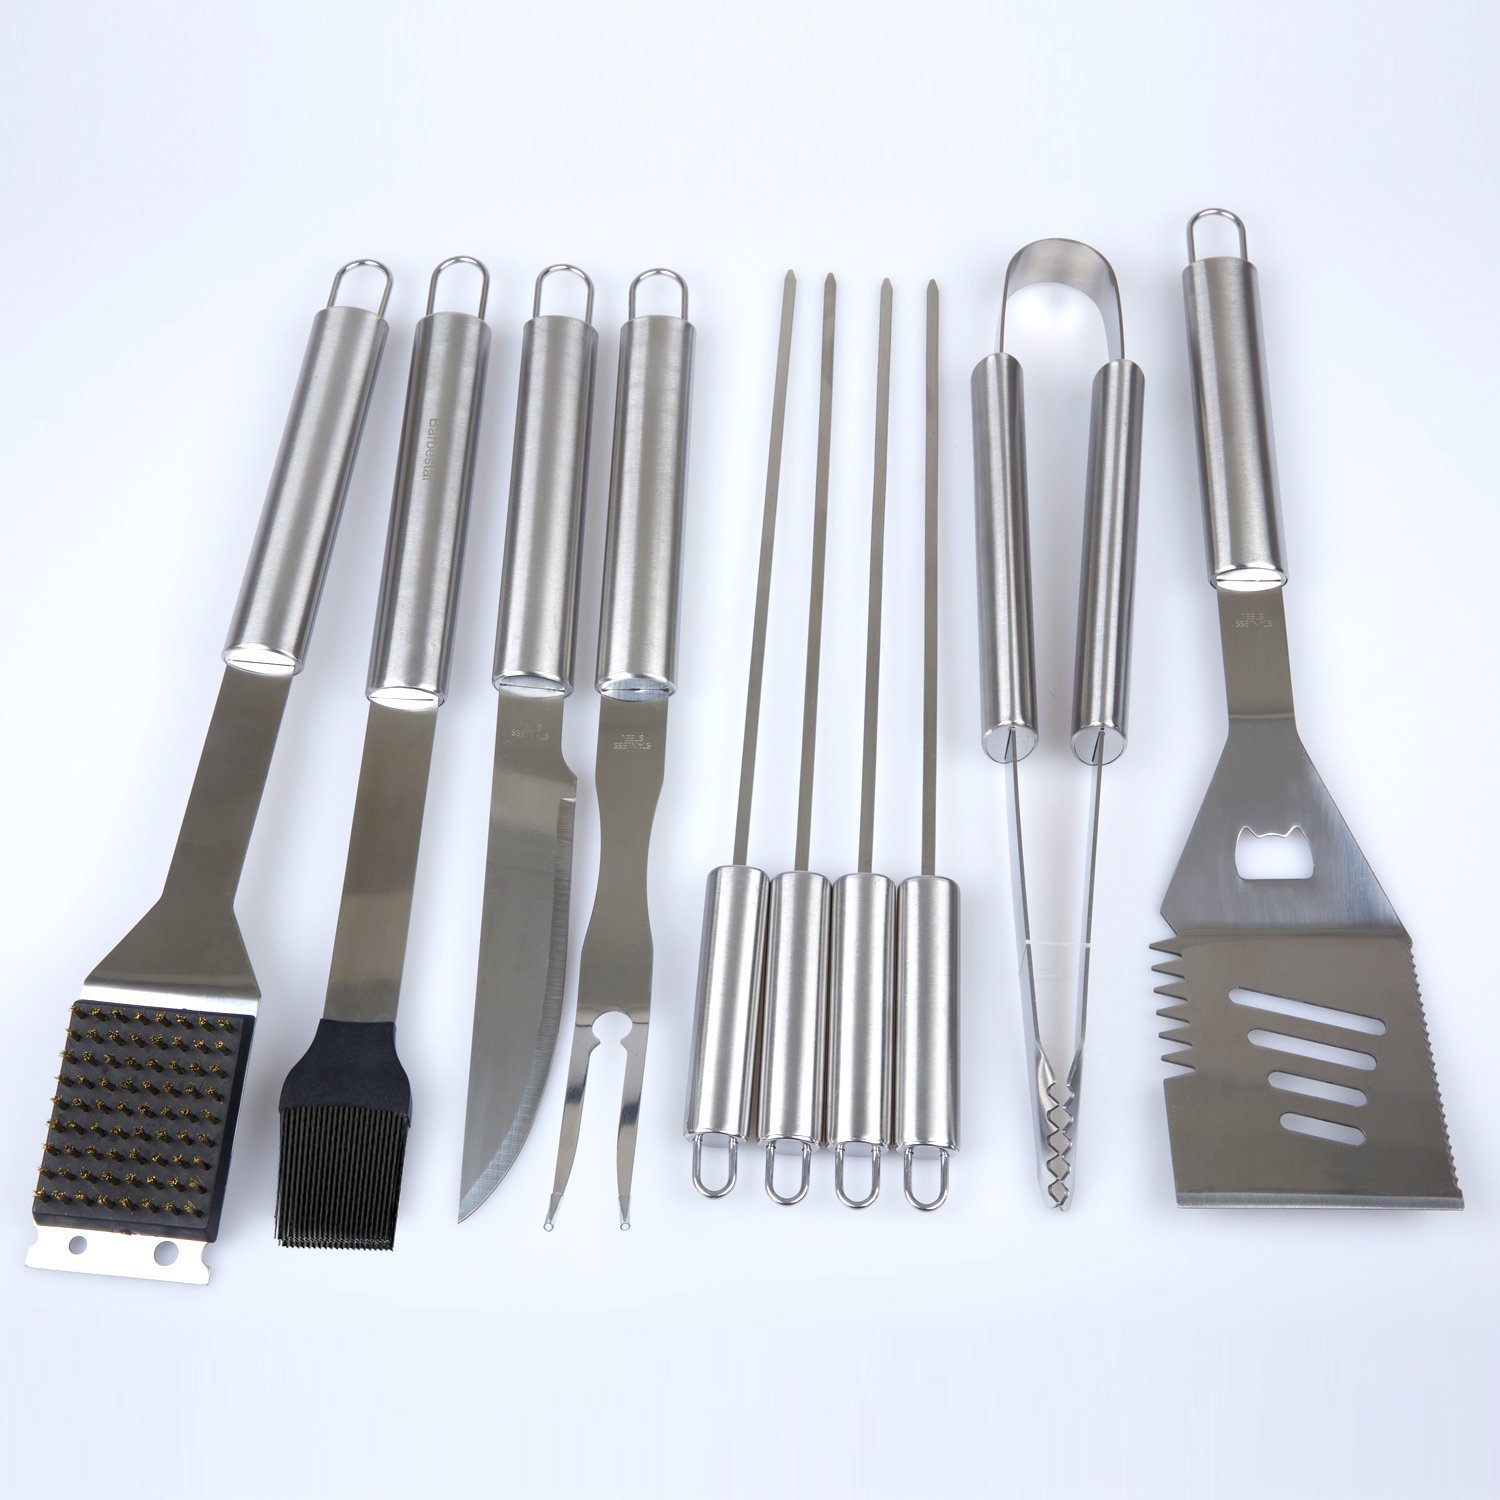 Kacebela BBQ Grill Tools Set Forks Spatula 19-Piece Premium Stainless Steel Barbecue Grilling Utensils with Aluminum Case Skewers Grill Brush Tongs